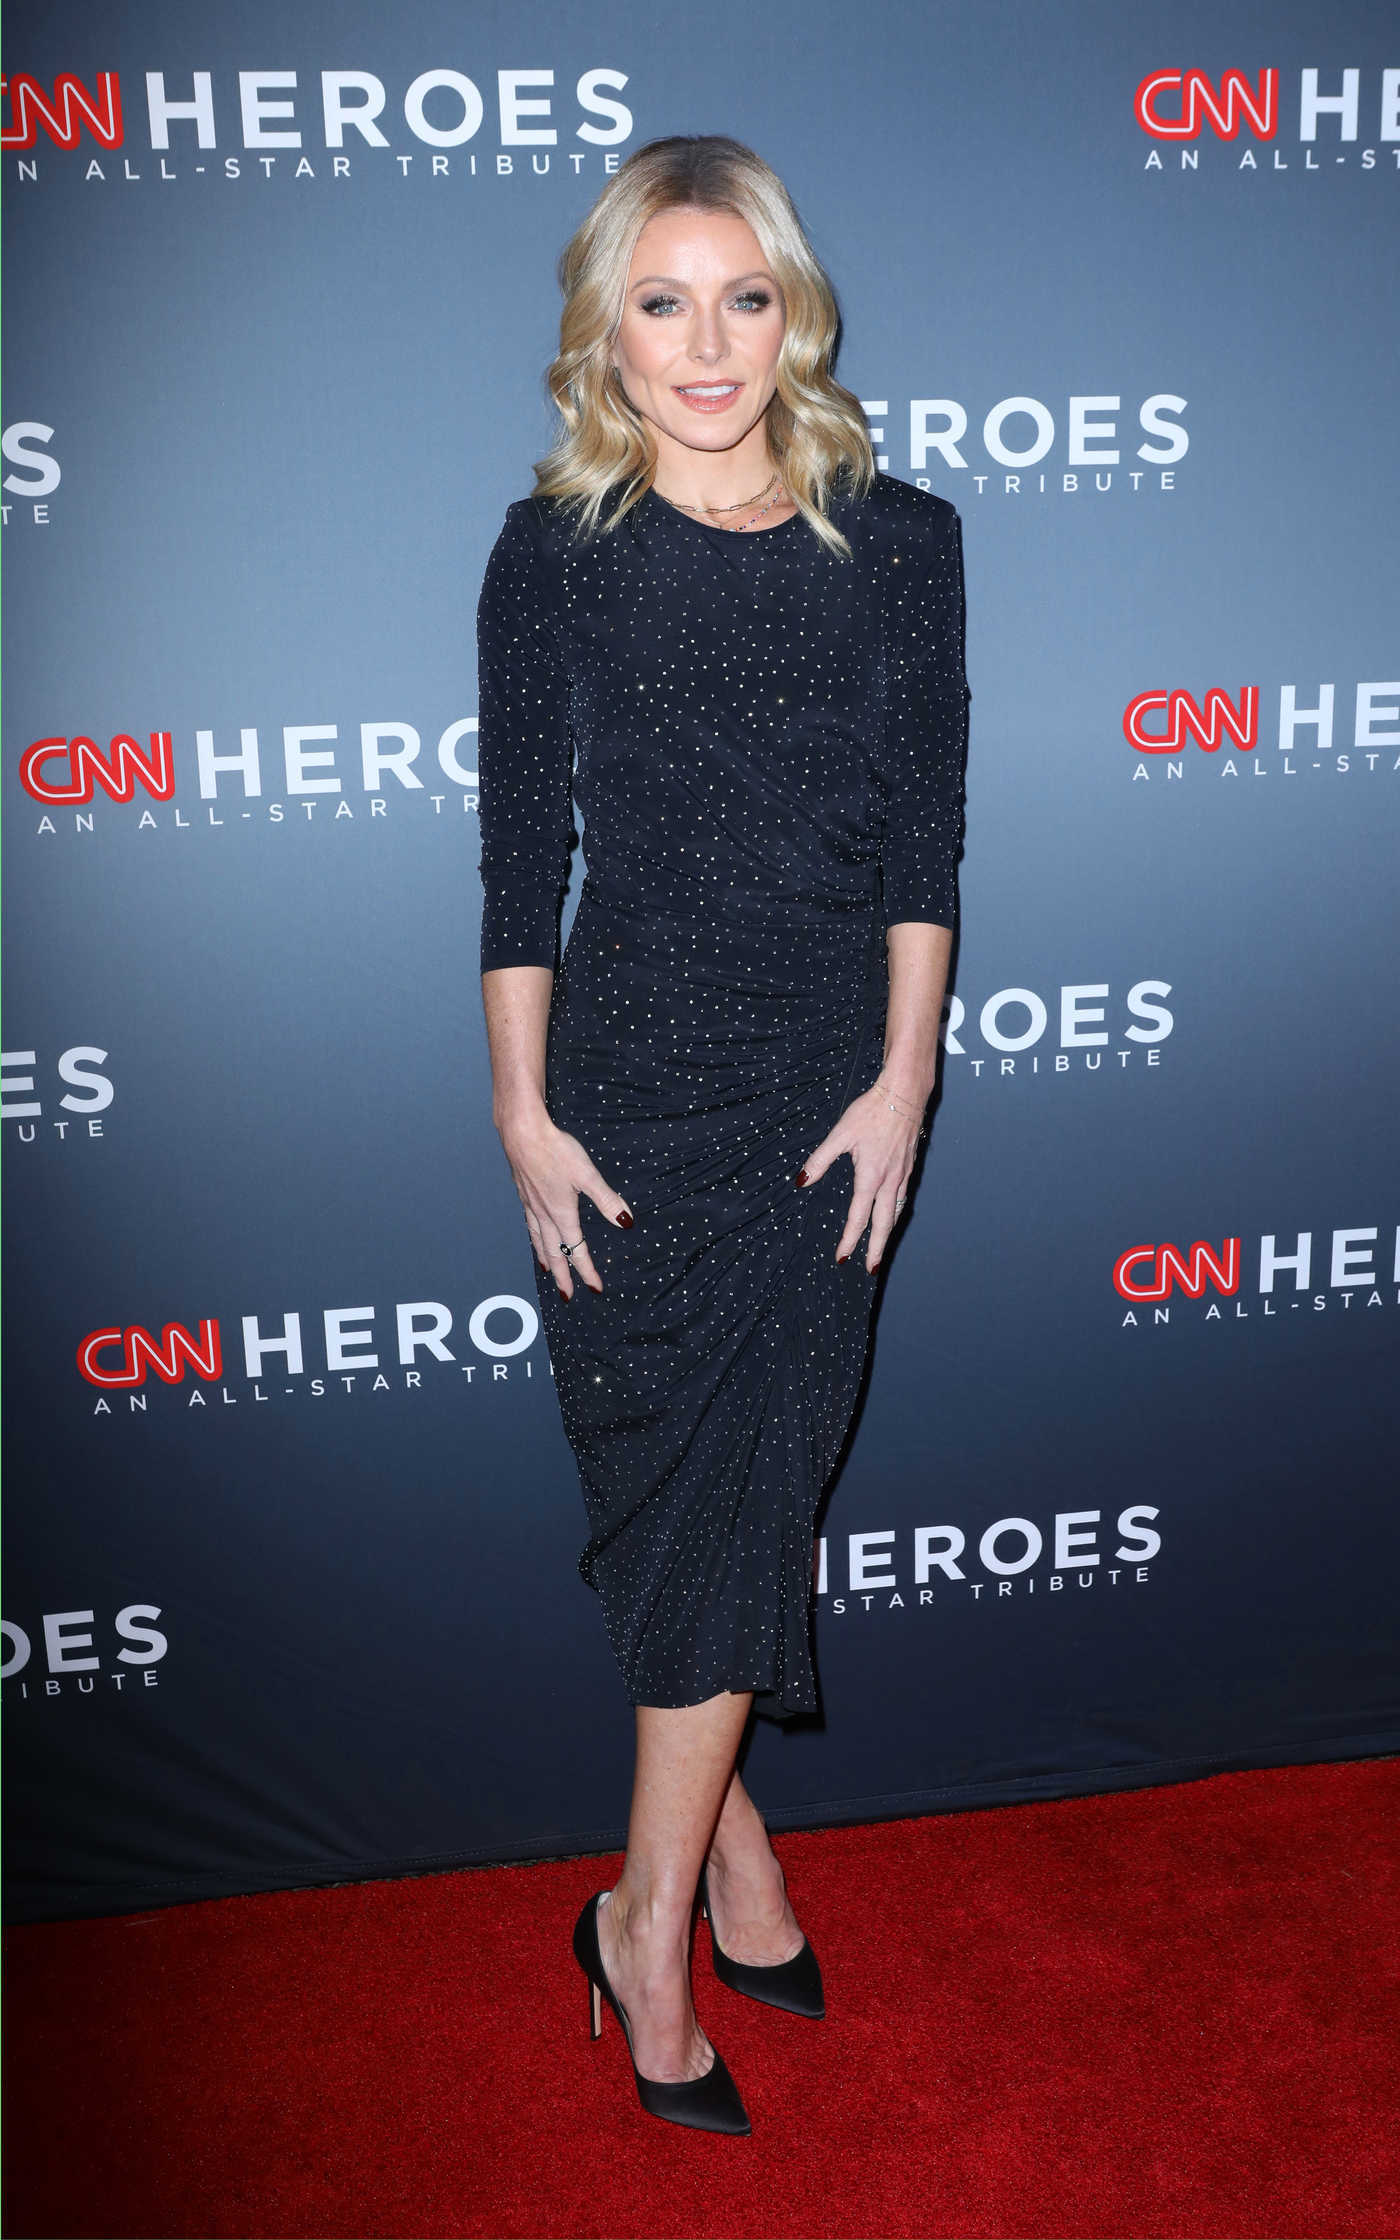 Kelly Ripa Attends The 12th Annual Cnn Heroes An All Star Tribute In New York